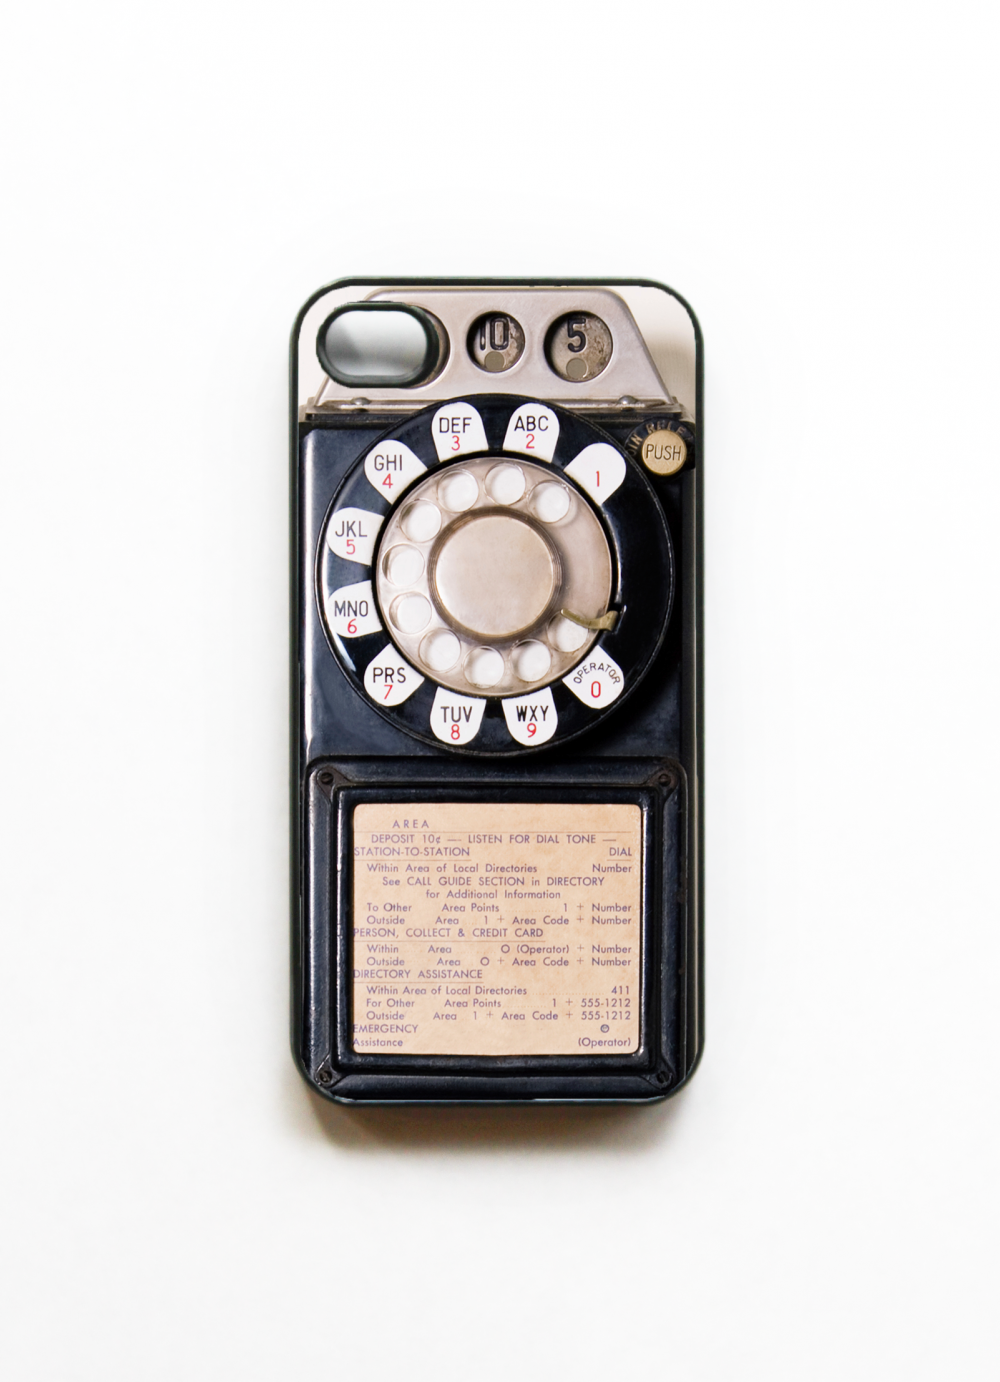 Payphone iphone 4 Case - Black. Cases for iphone 4 - Vintage Pay Phone iPhone 4 Case